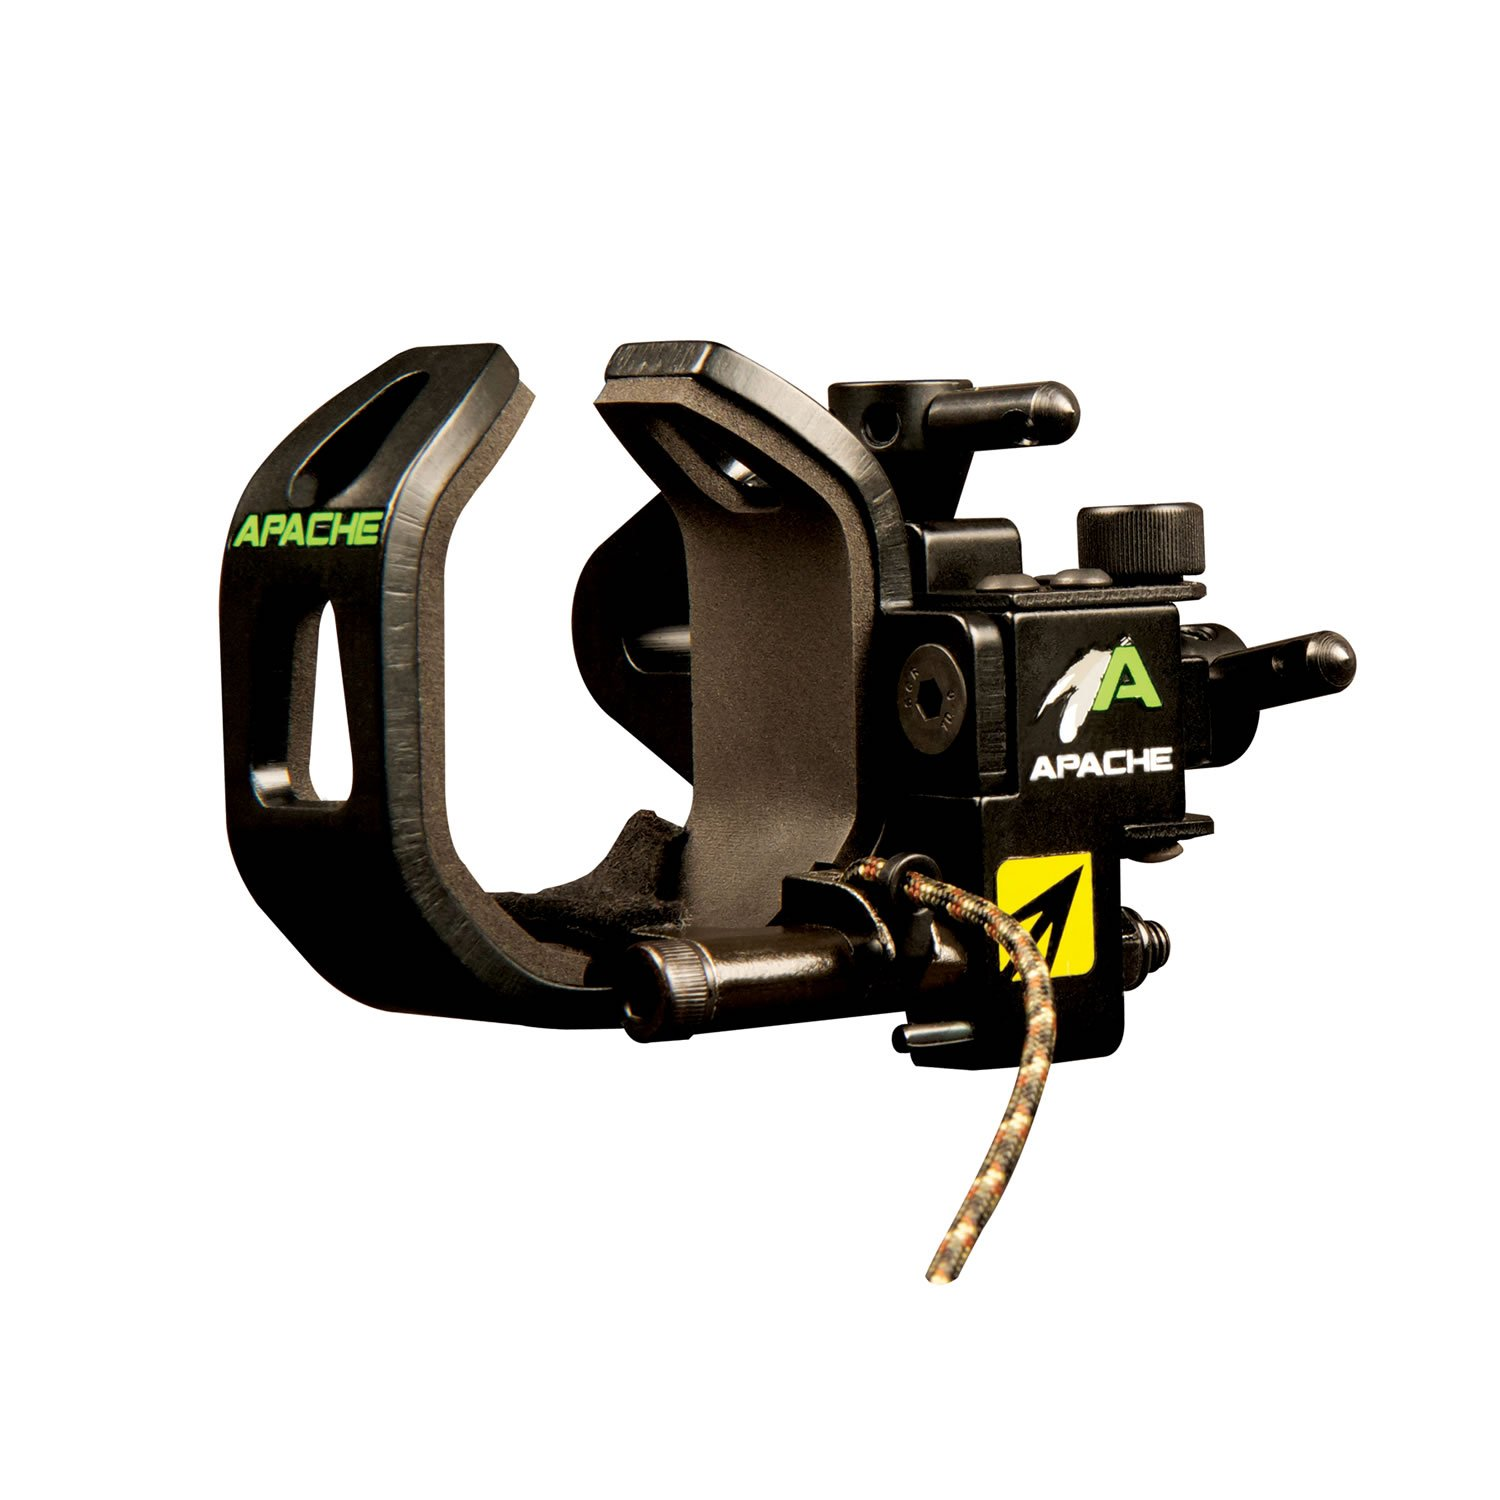 New Archery Apache Drop Away Arrow Rest (Black, Lefthand)